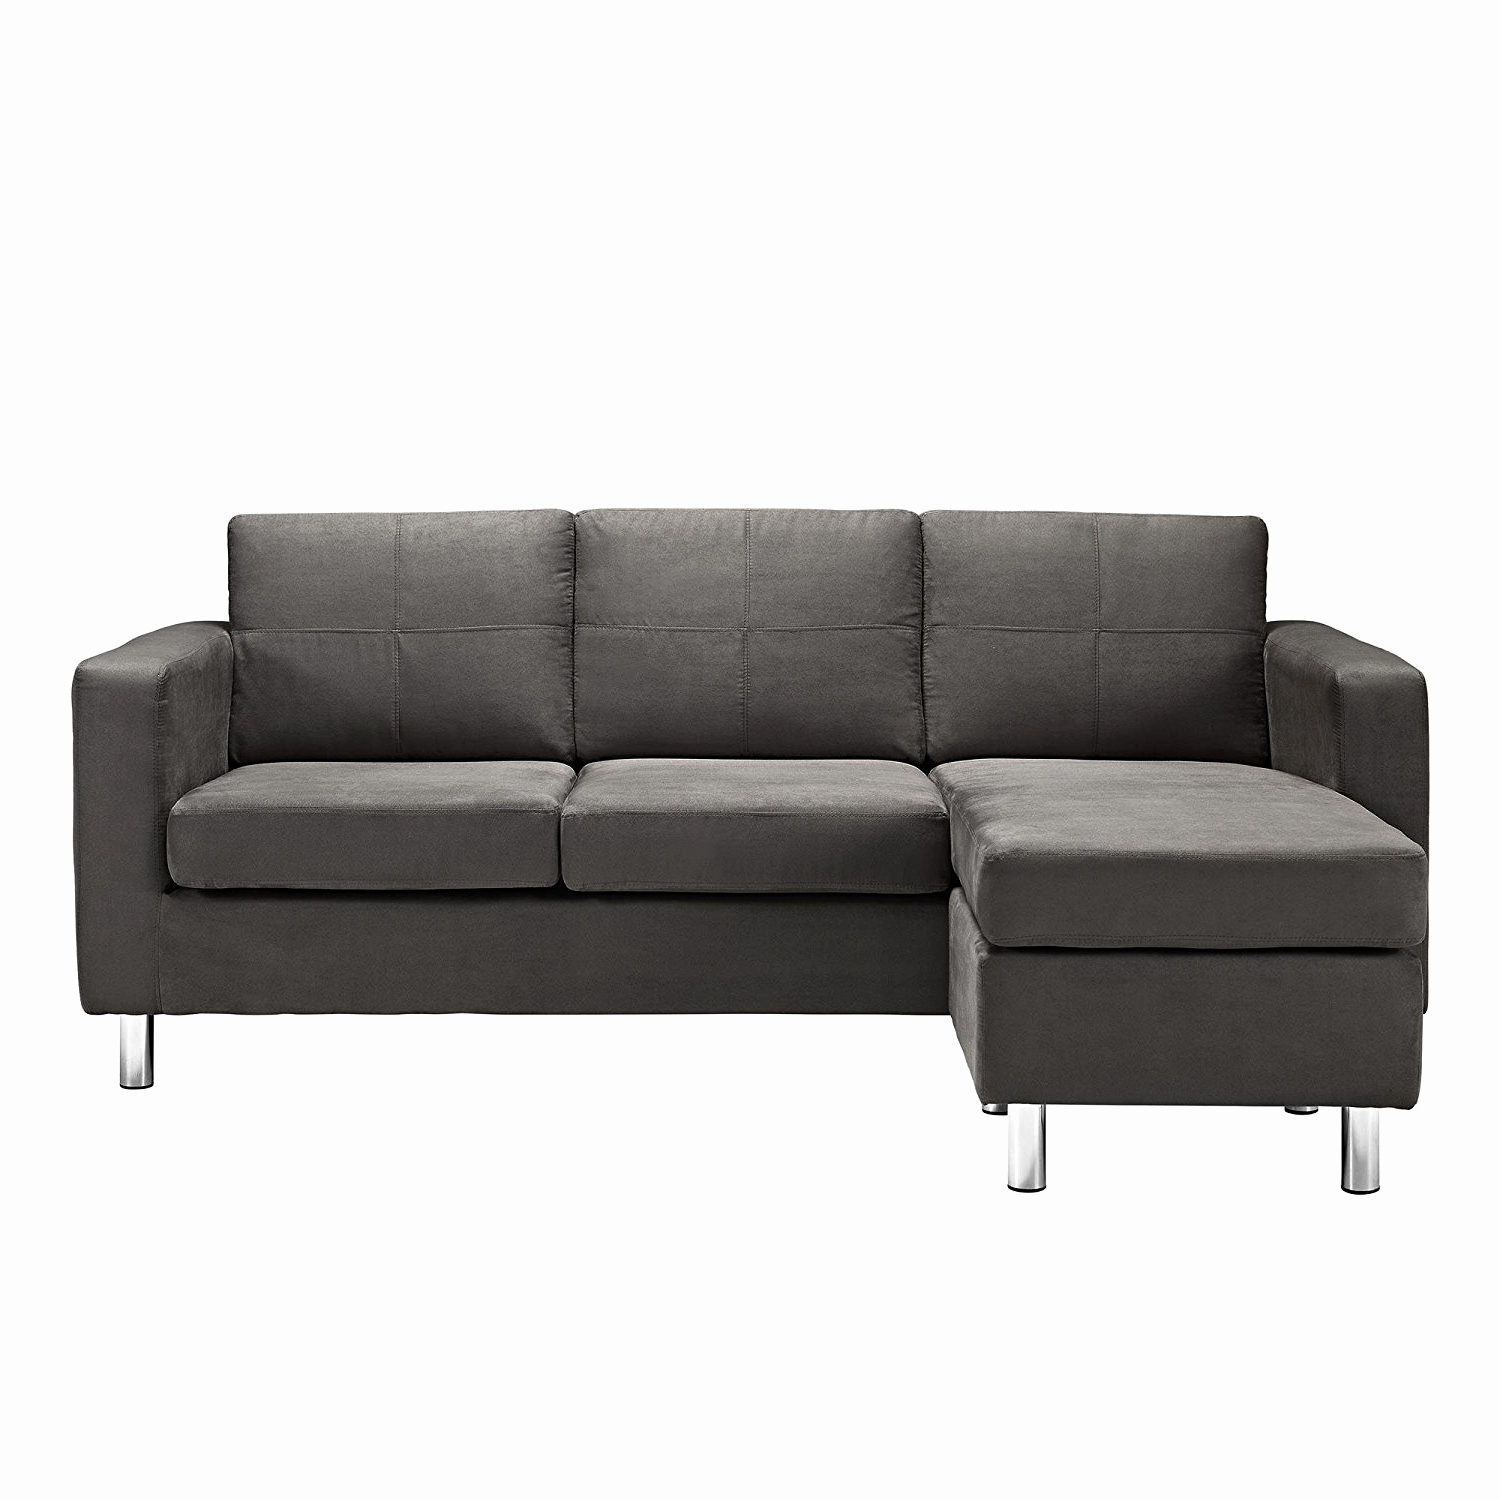 Current Small Scale Sofas Intended For Fresh Small Scale Furniture Sectional 2018 – Couches Ideas (Gallery 8 of 20)